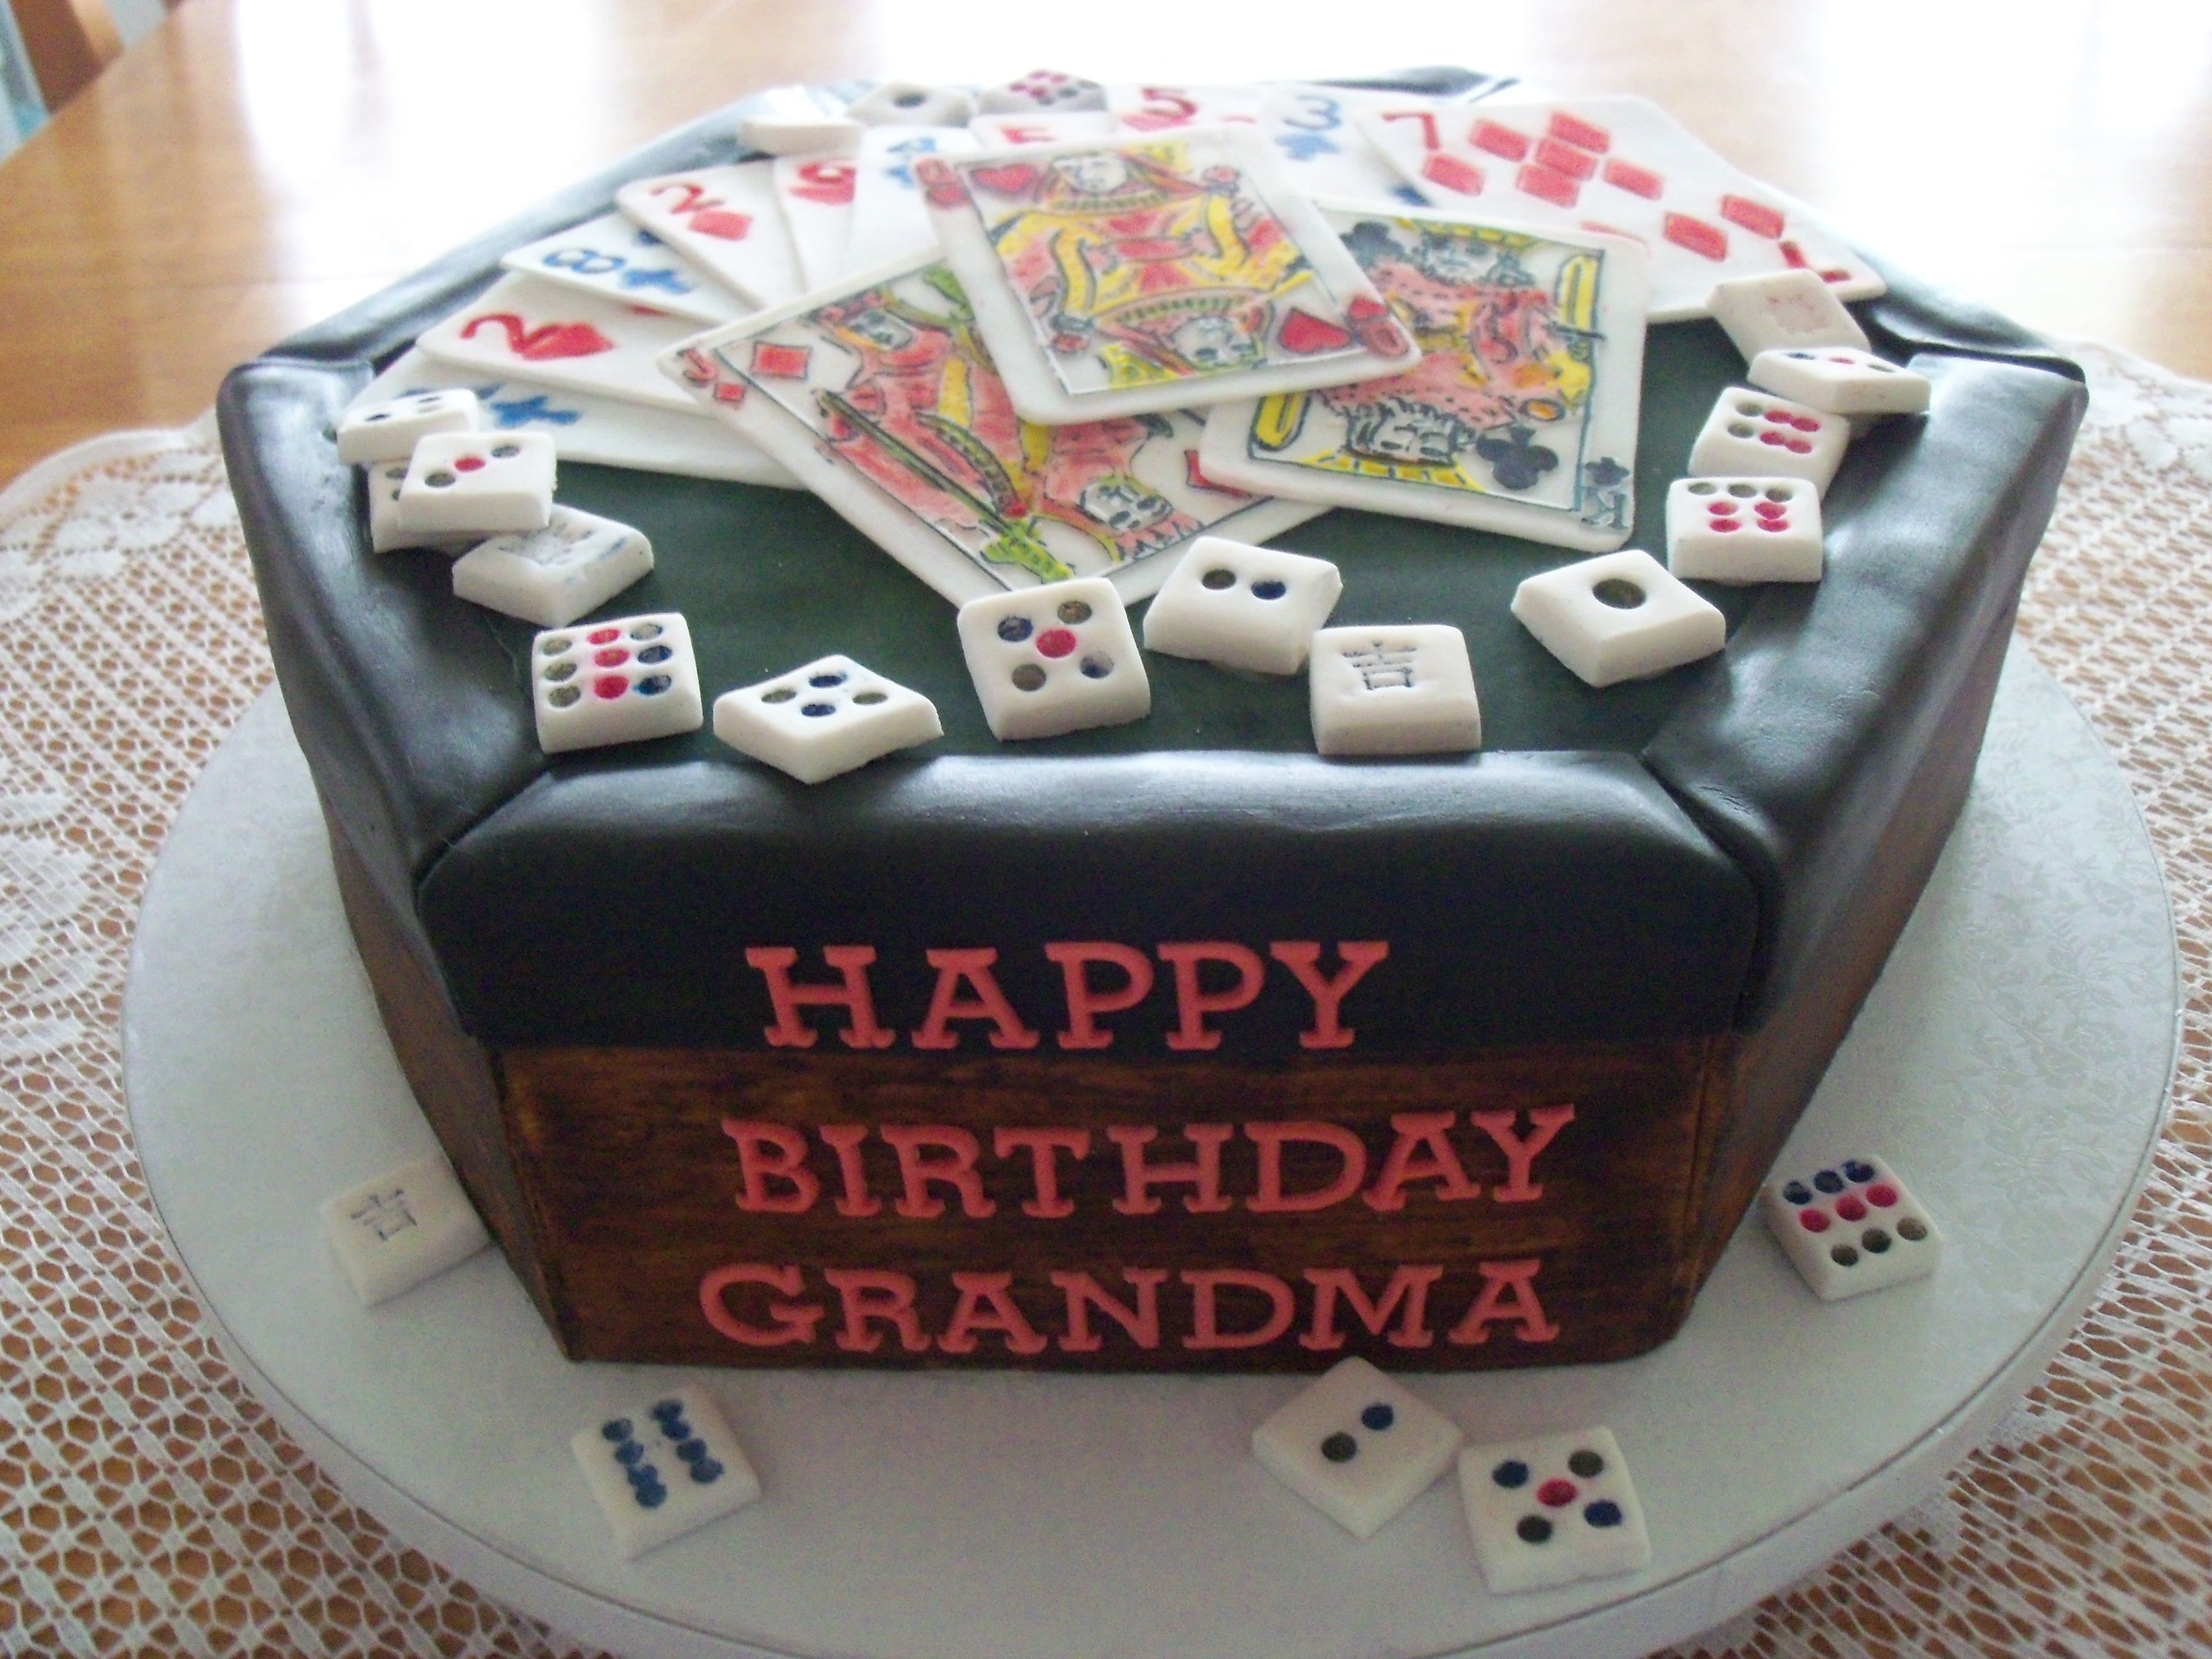 This cake was for a card and Mahjongg player.  The card values add up to her age of 83.  Everything is fondant, just slice and enjoy!!